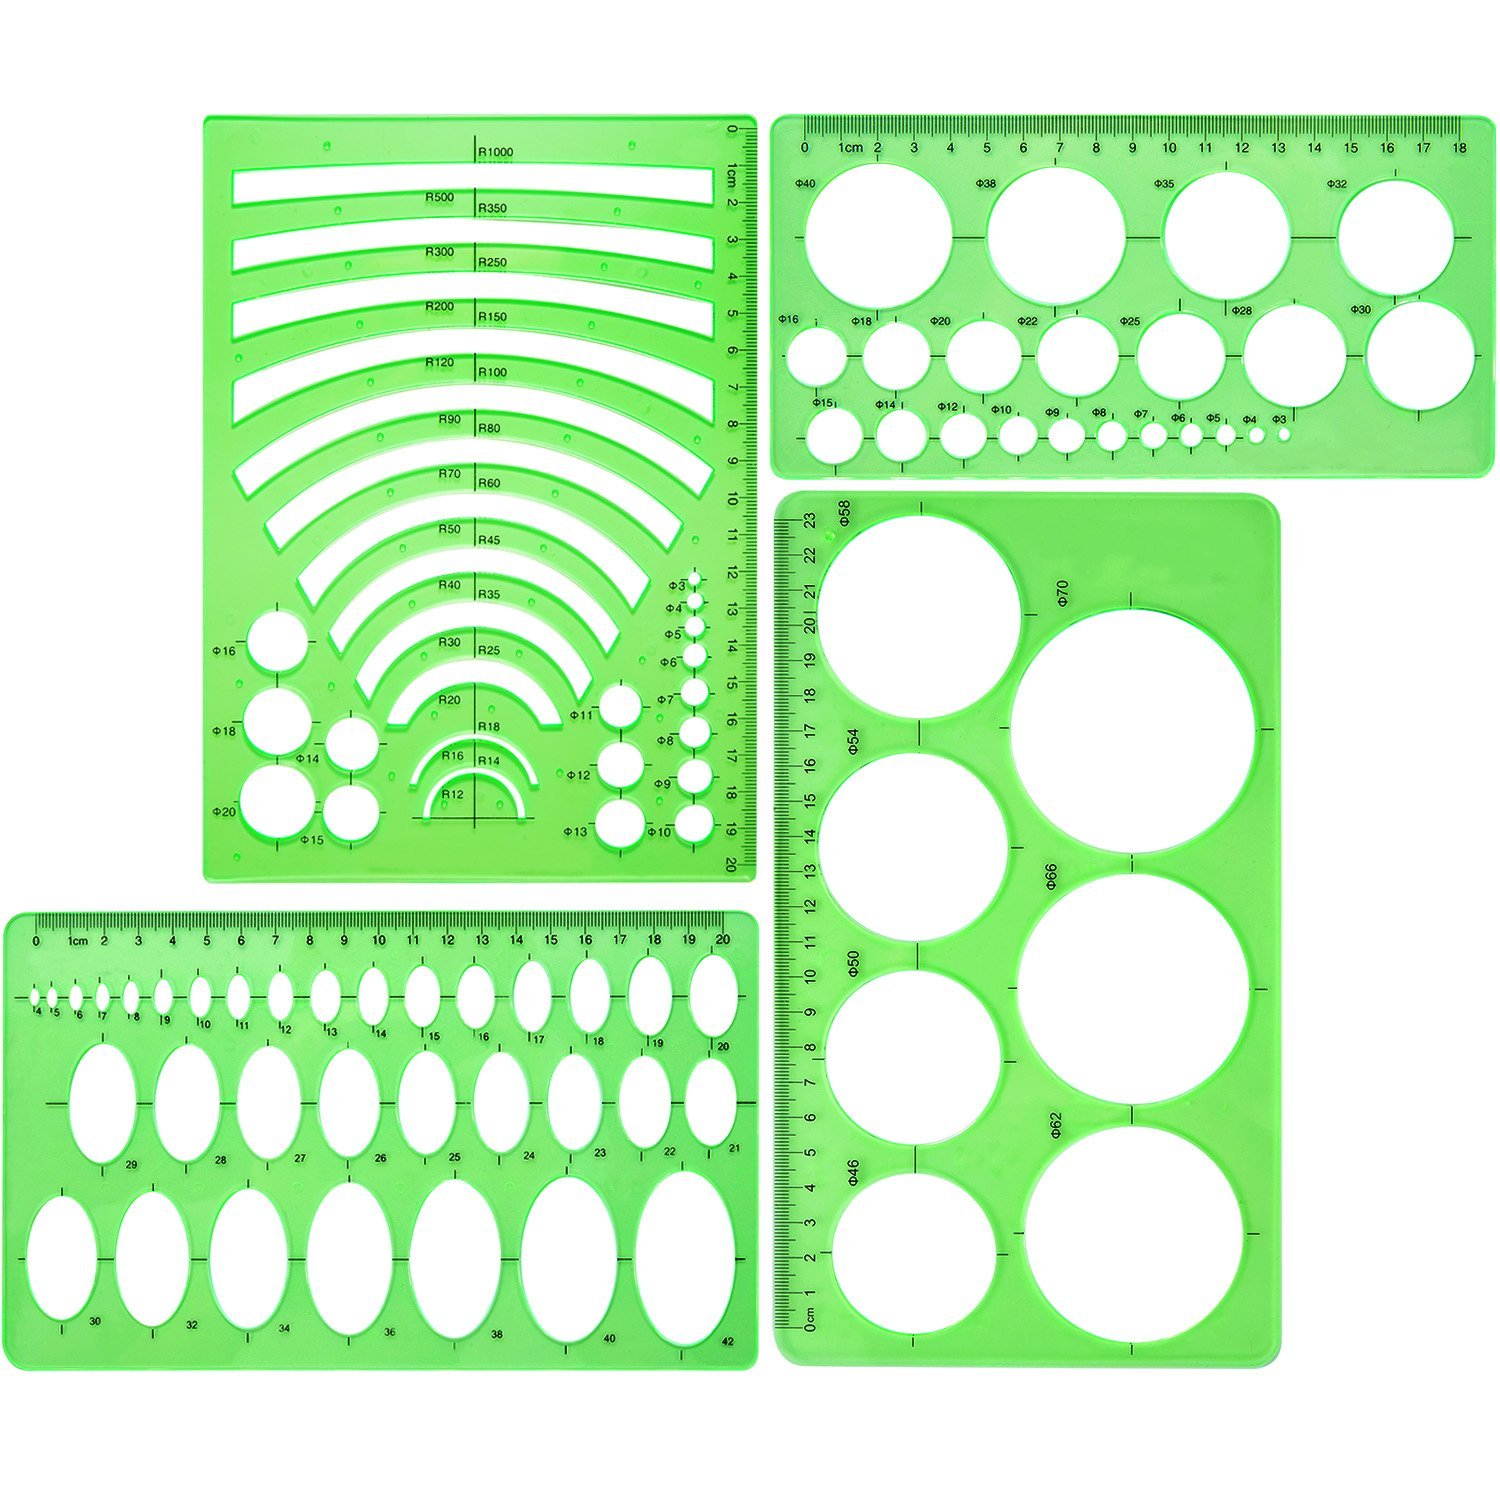 4 Pieces Clear Green Template Plastic Rulers Circle Oval Circle Radius Drawing Templates for Office and School Supplies Boao